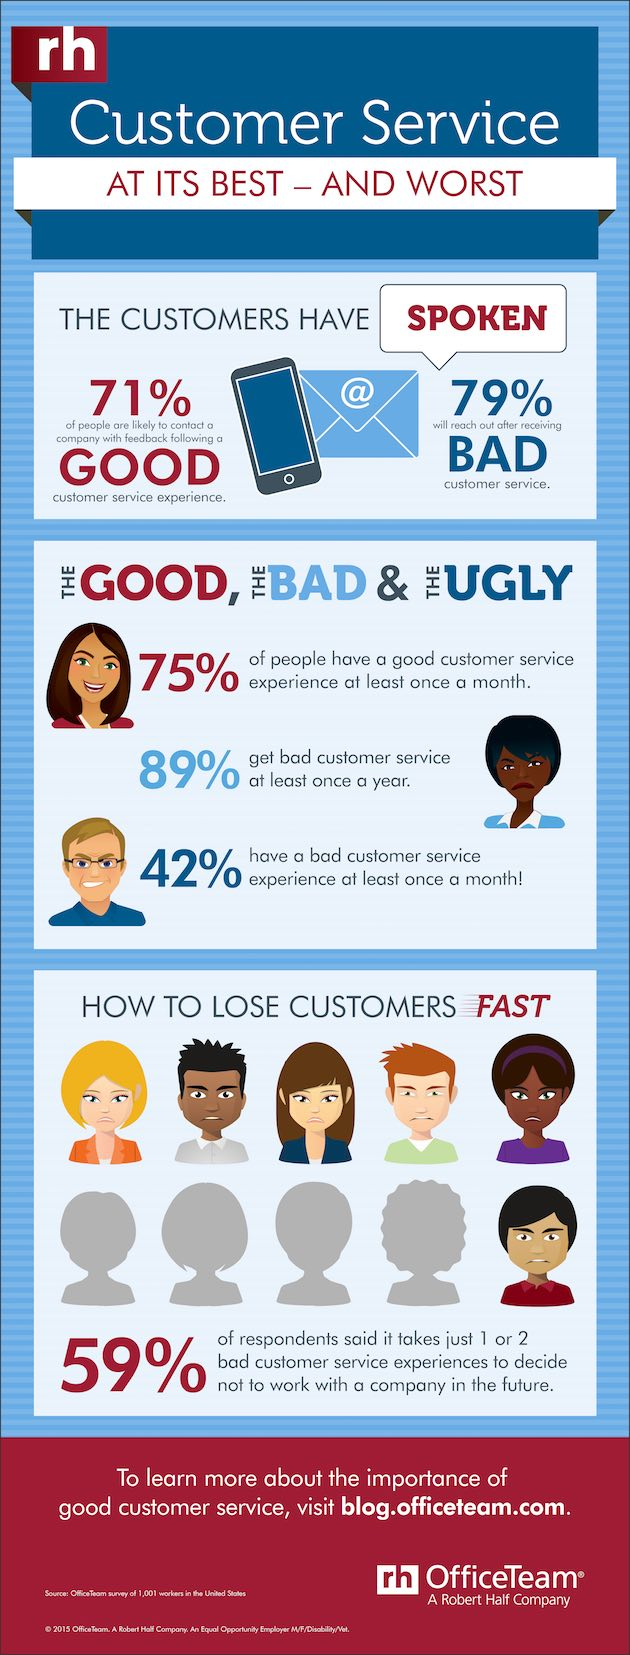 The Impact of Bad Customer Service Experiences